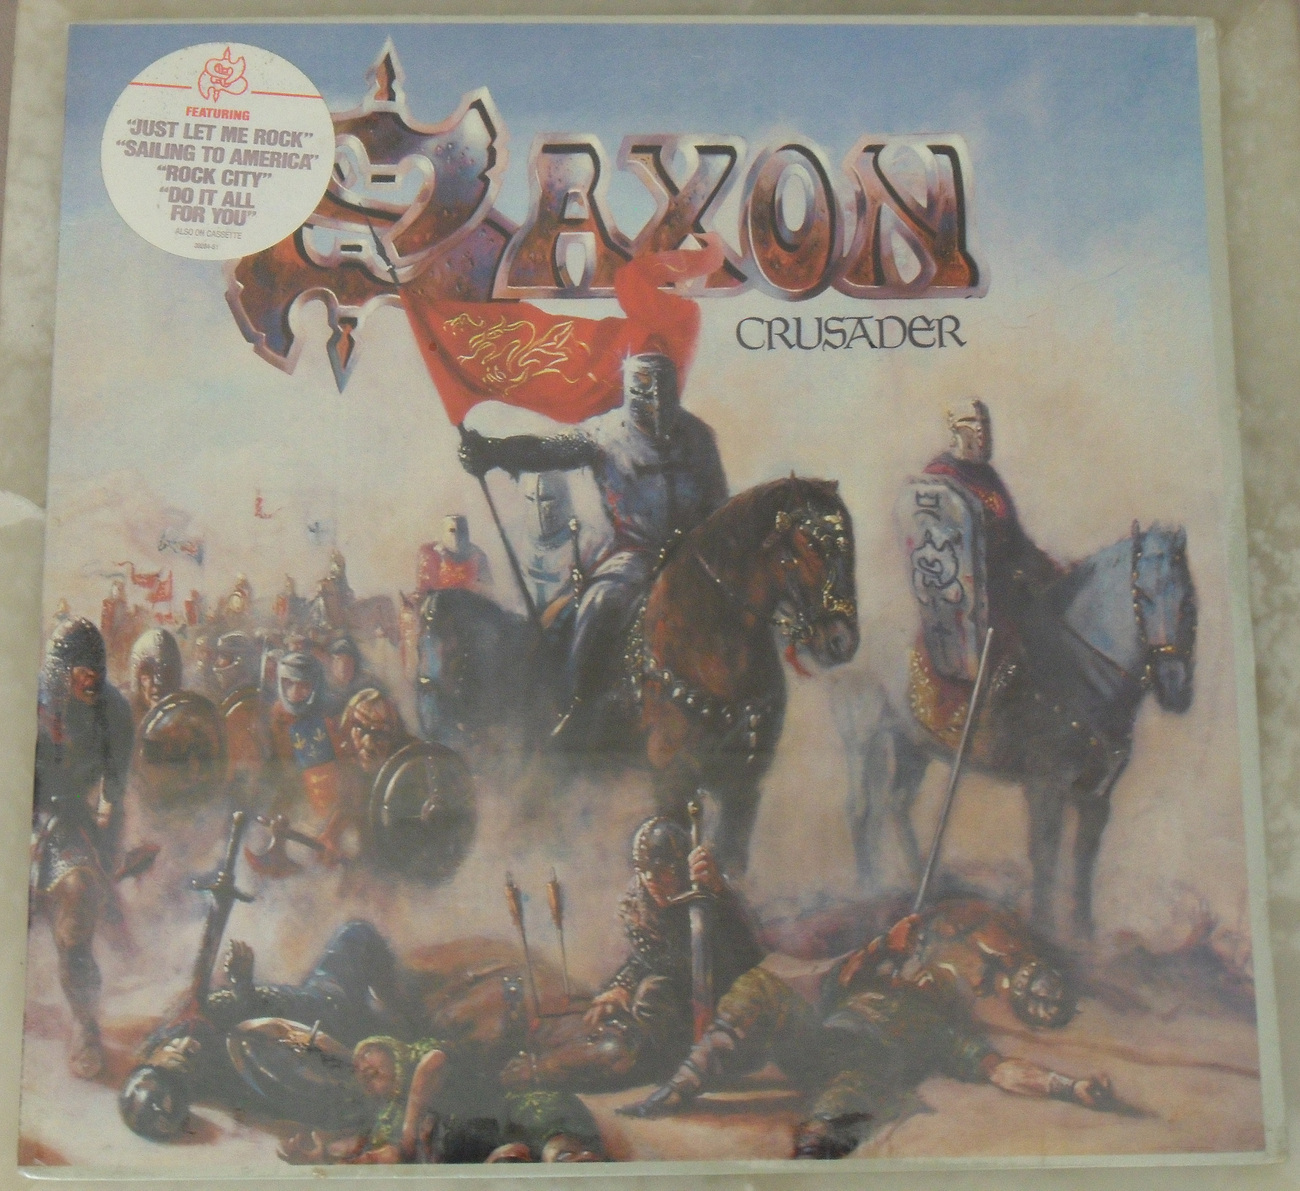 SAXON * Crusader * Sealed LP Record * Carrere * Heavy Metal